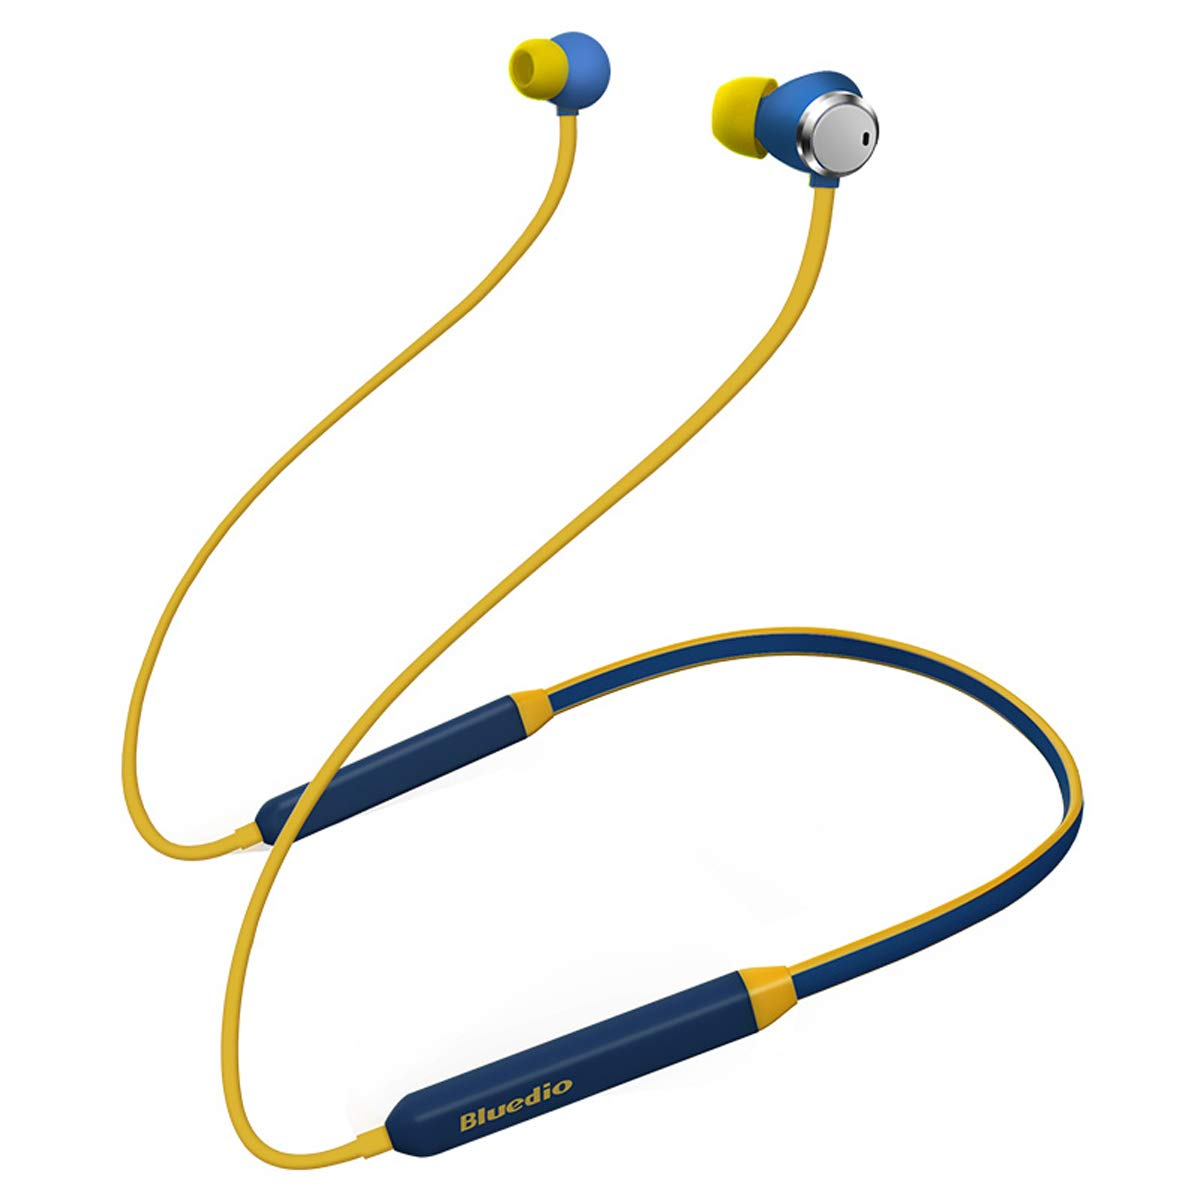 Bluedio TN Turbine Active Noise Cancelling Earbuds Neckband Earphones Bluetooth 4.2 Wireless Sports Headphones Headsets Magnetic Sweatproof Running Earbuds with Mic Magnetic Design Blue